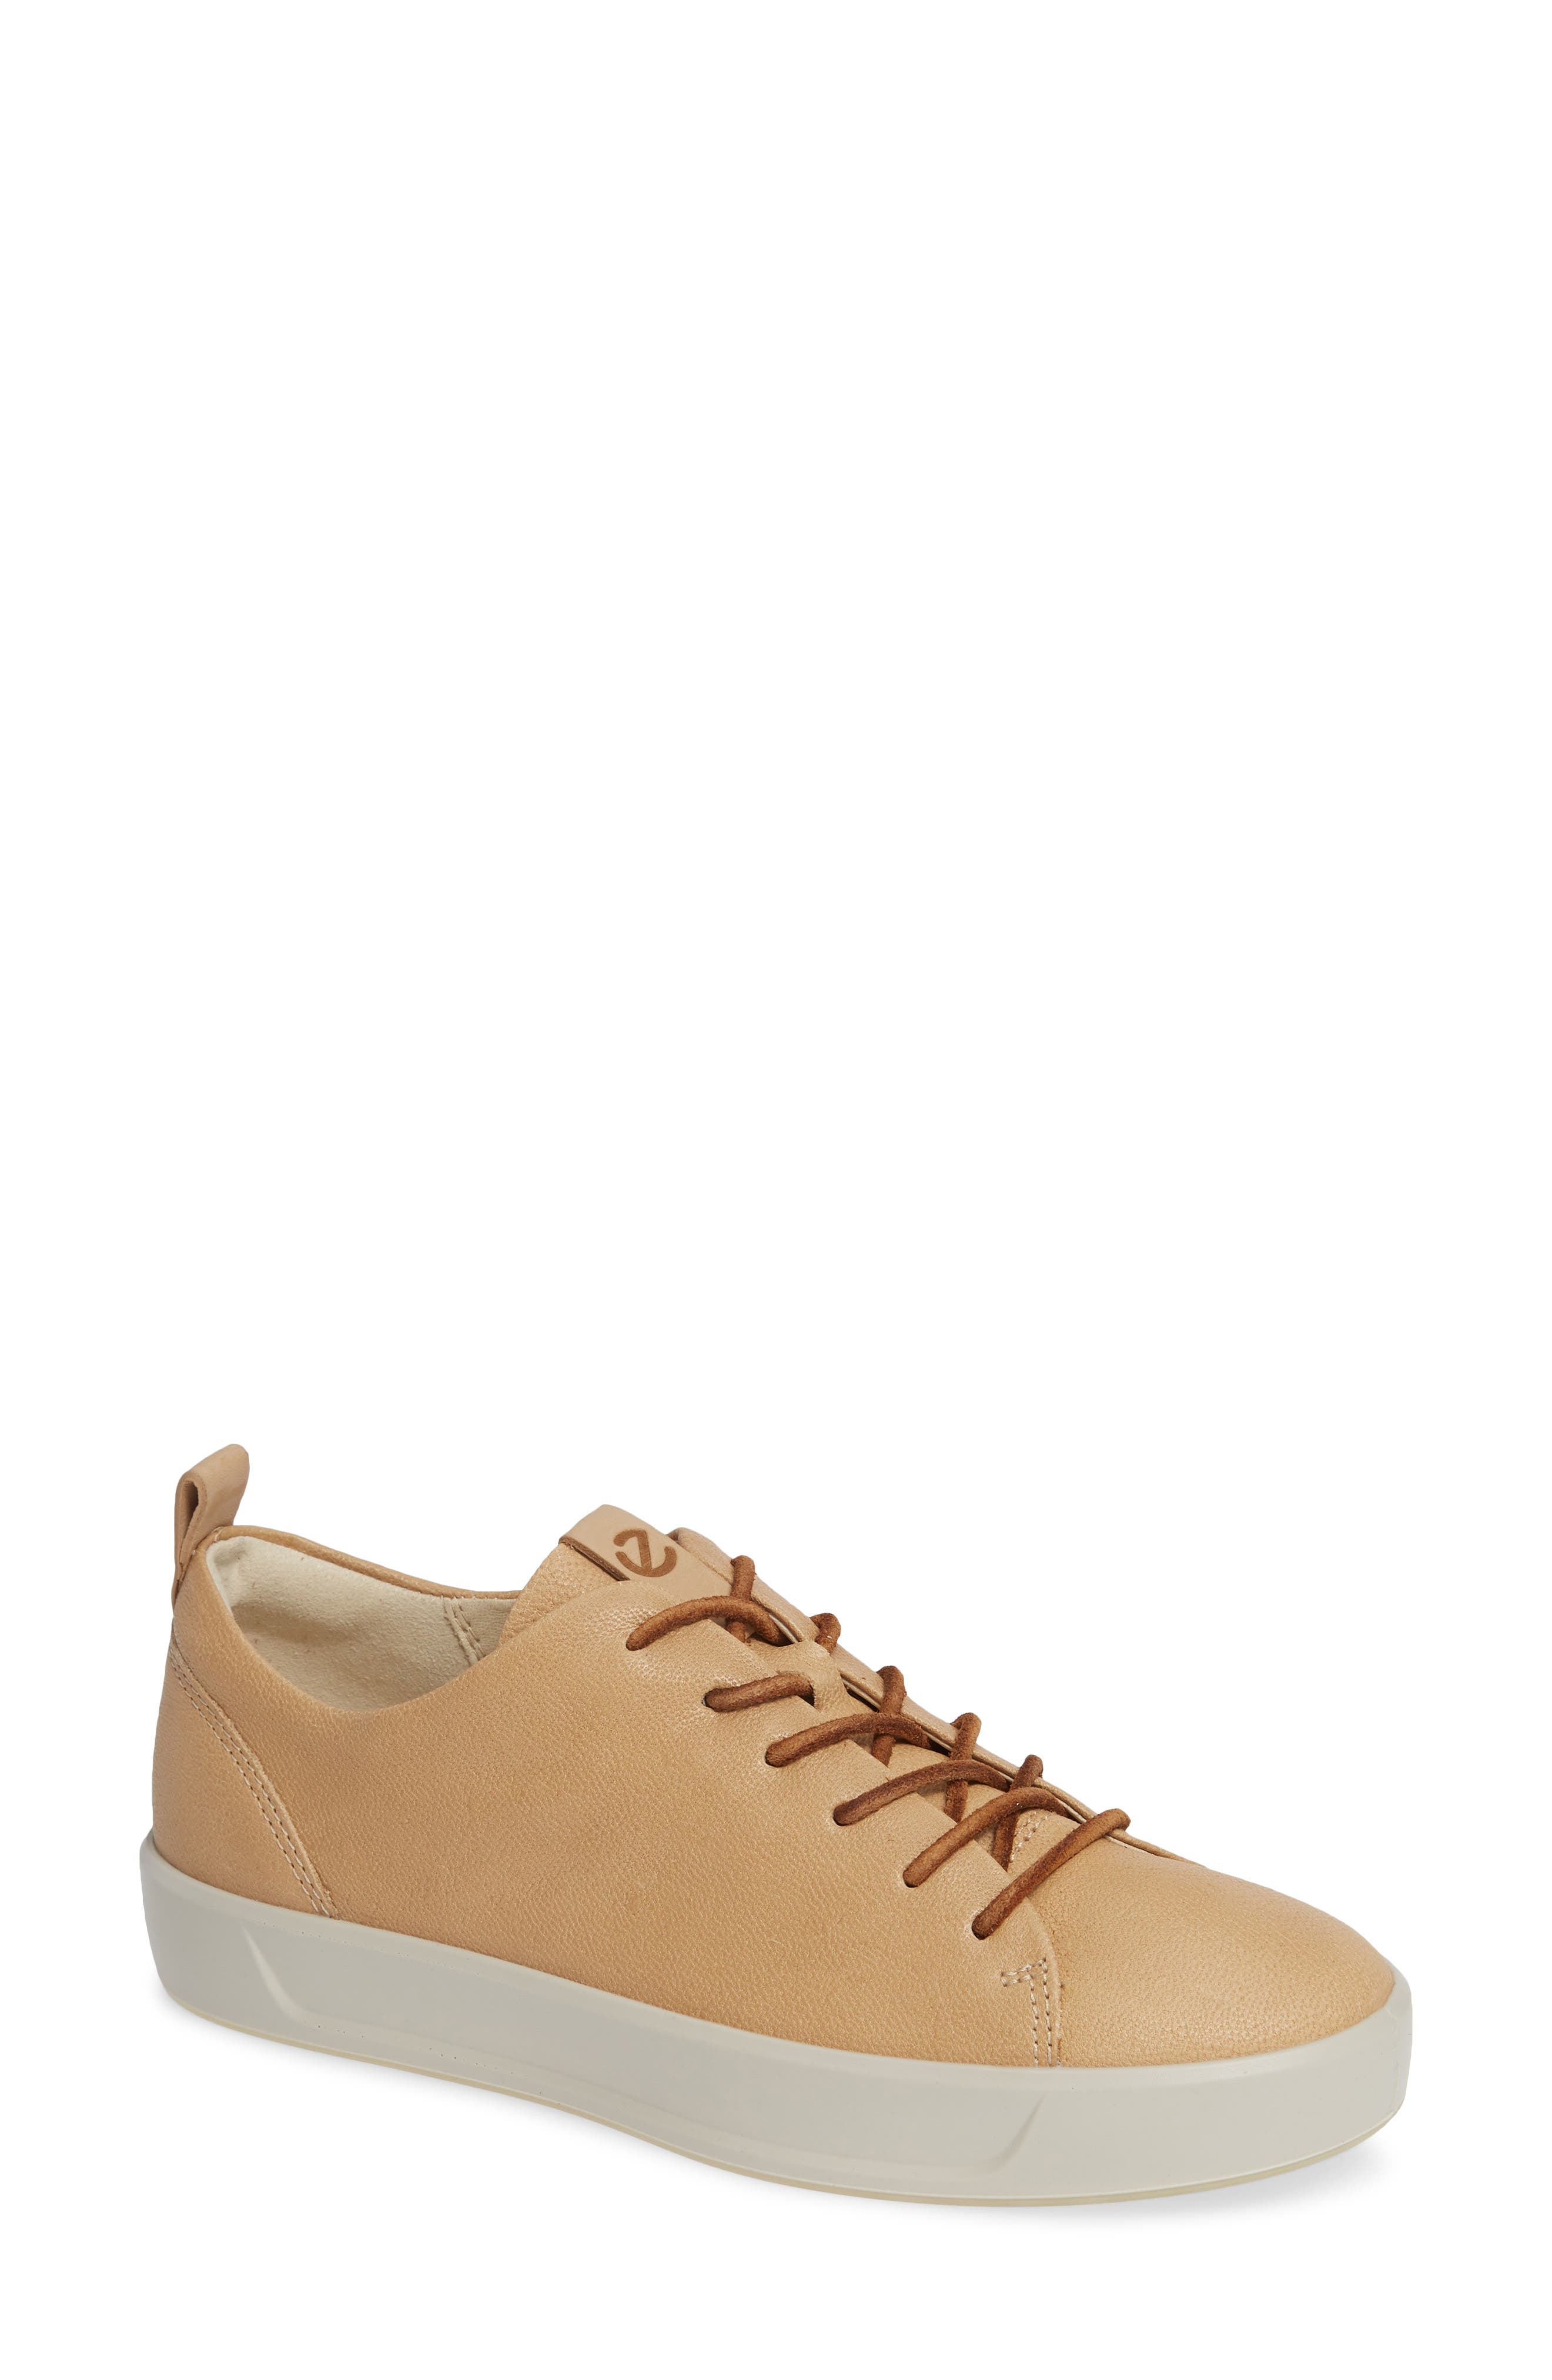 Soft 8 Sneaker,                         Main,                         color, POWDER LEATHER